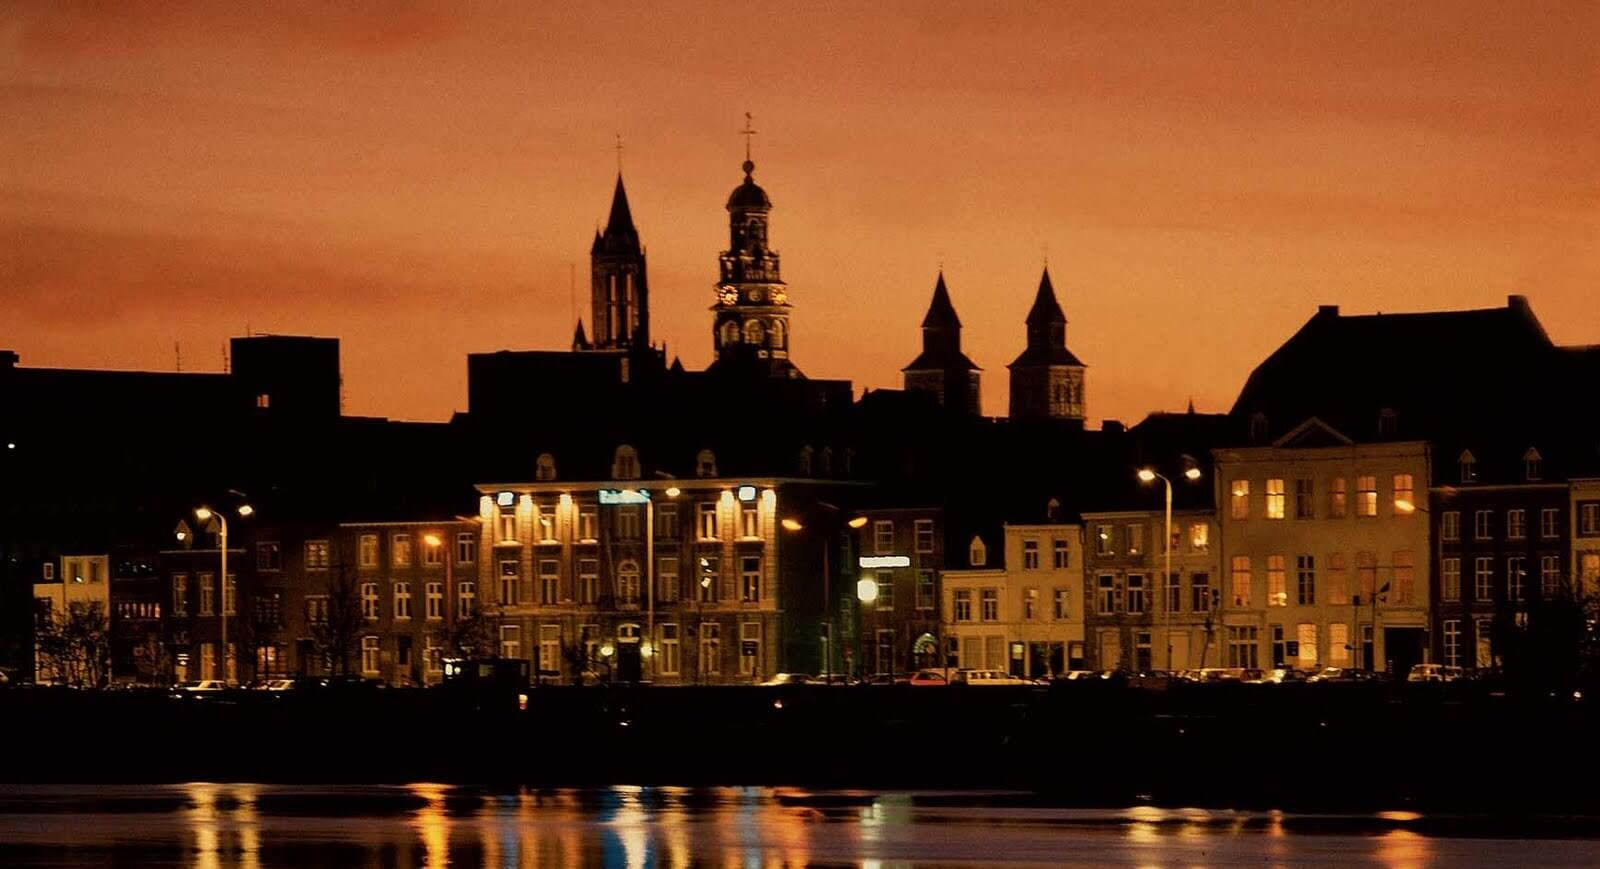 Cheap flights to Maastricht